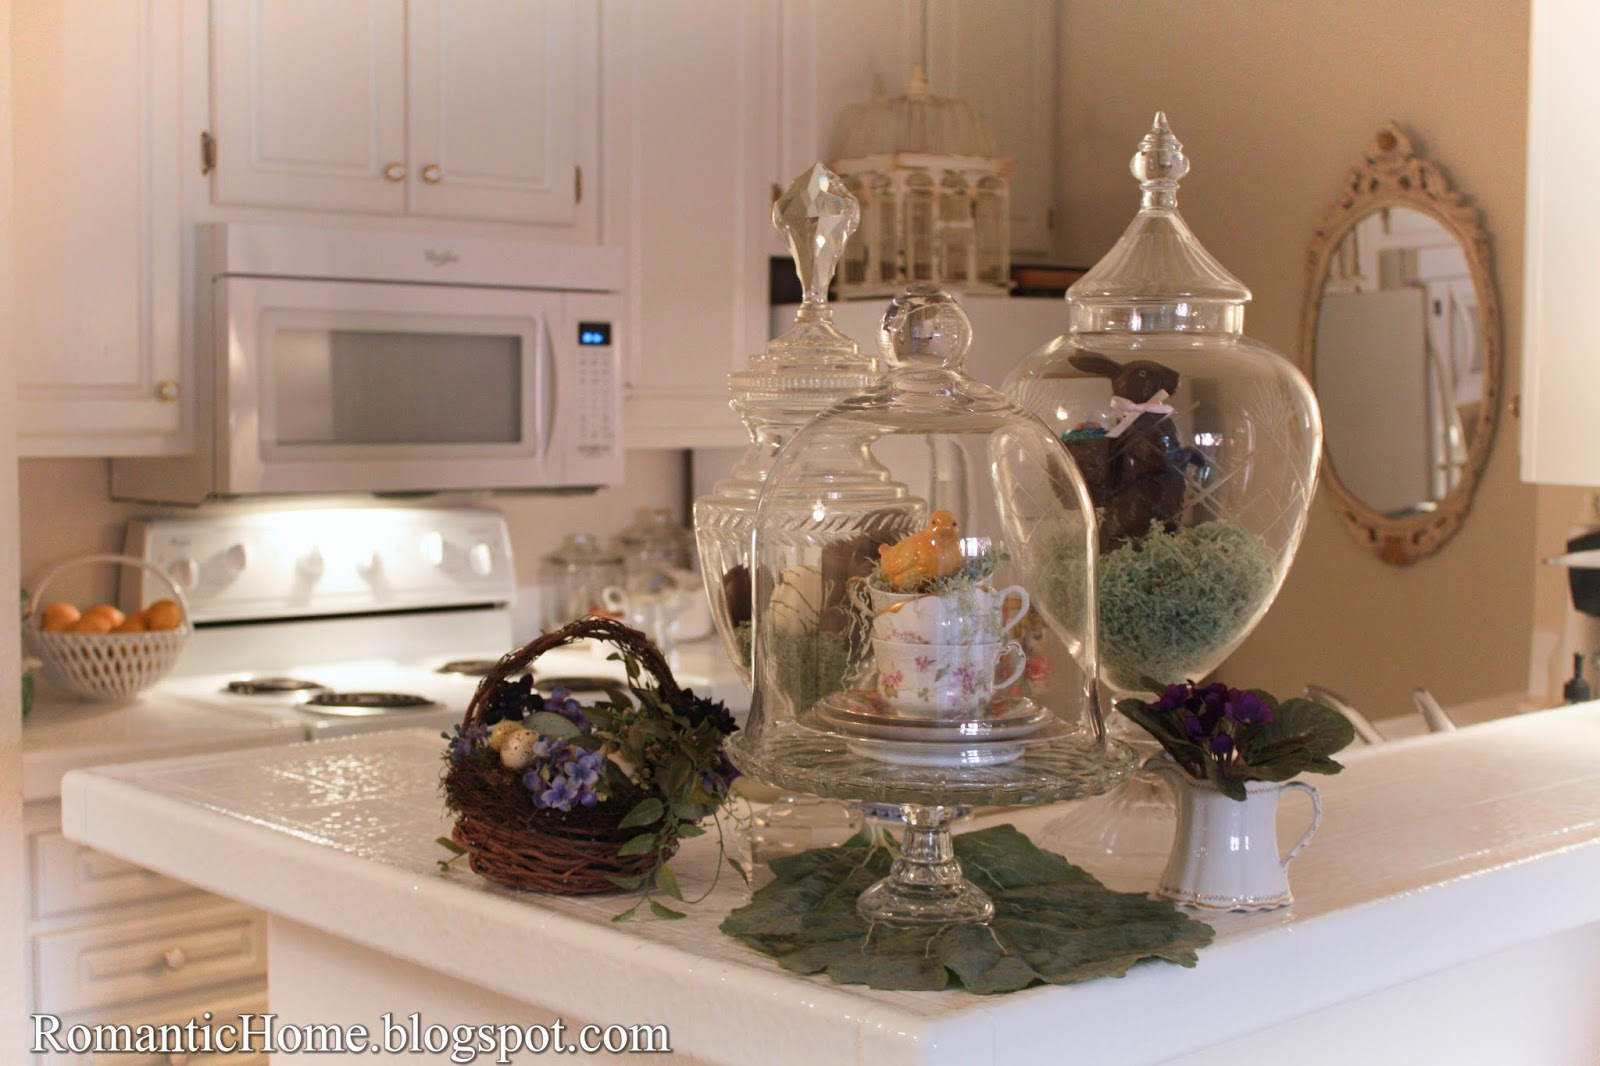 My romantic home a little kitchen easter decor show and for Home decor kitchen